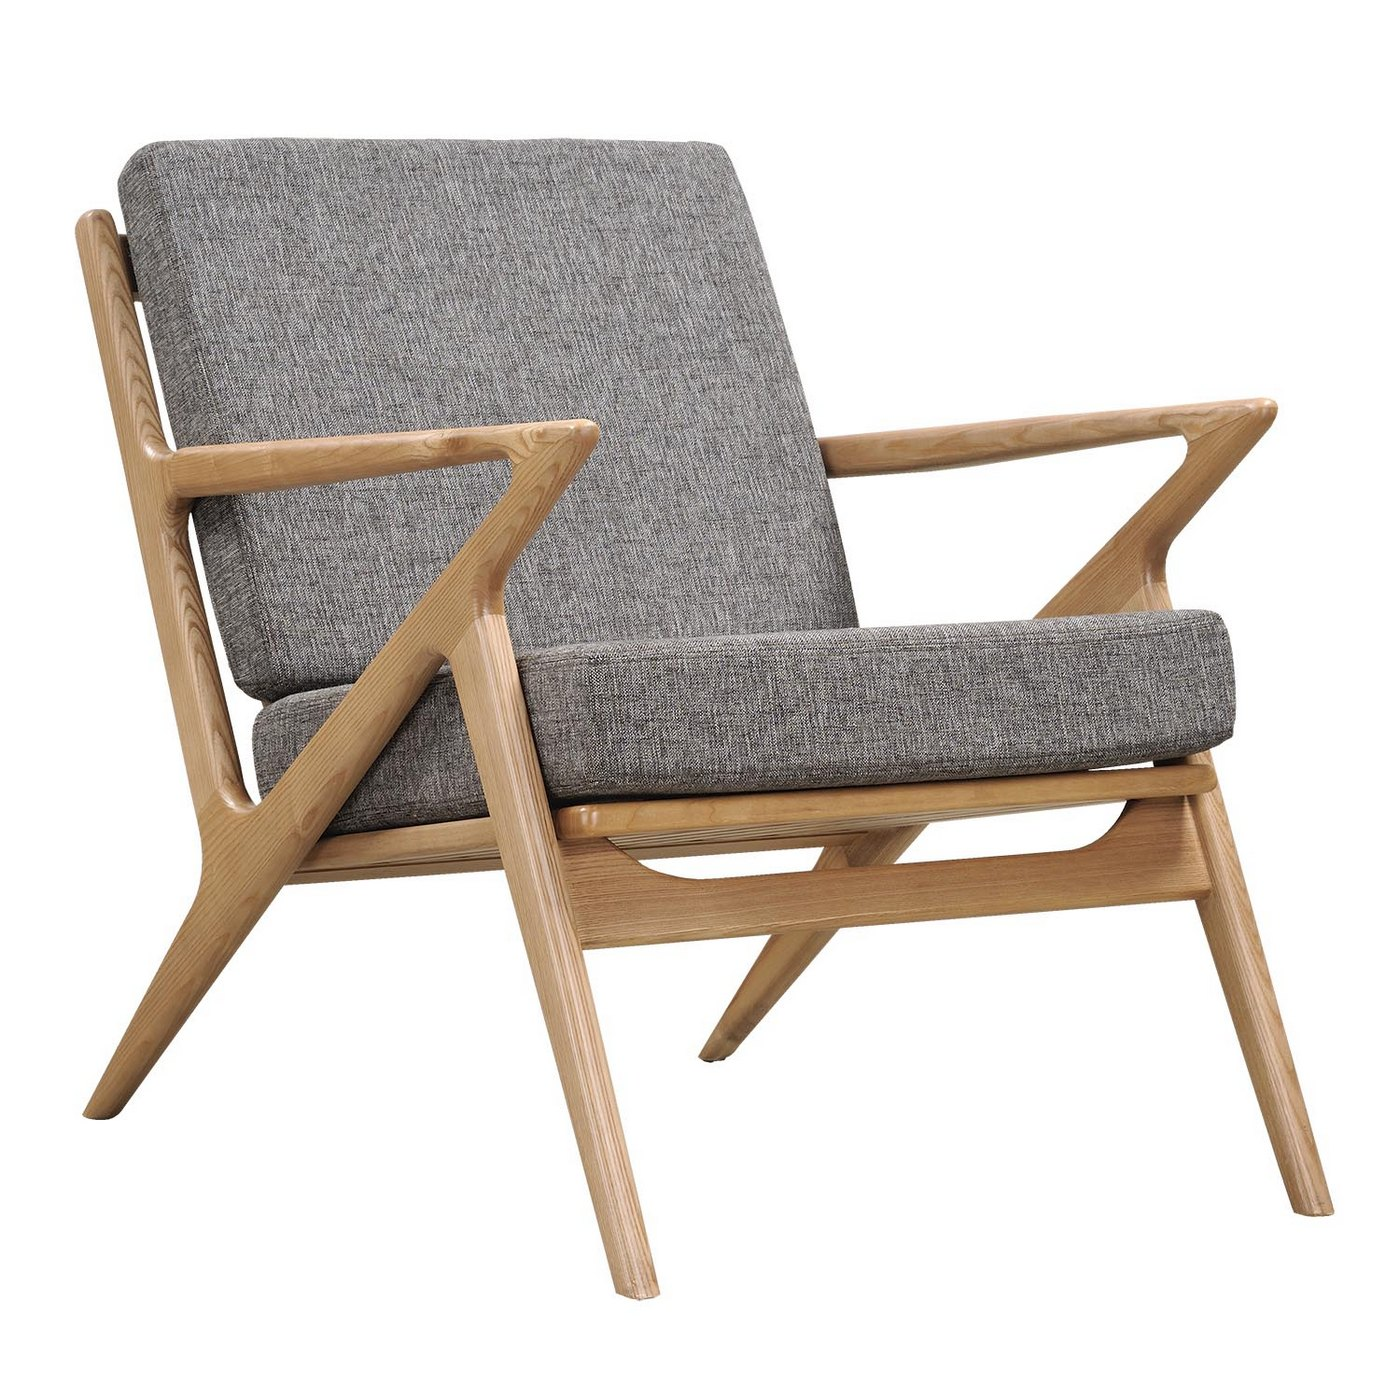 Midcentury Chairs Mid Century Modern Wood Chair Grey Fabric Chairs